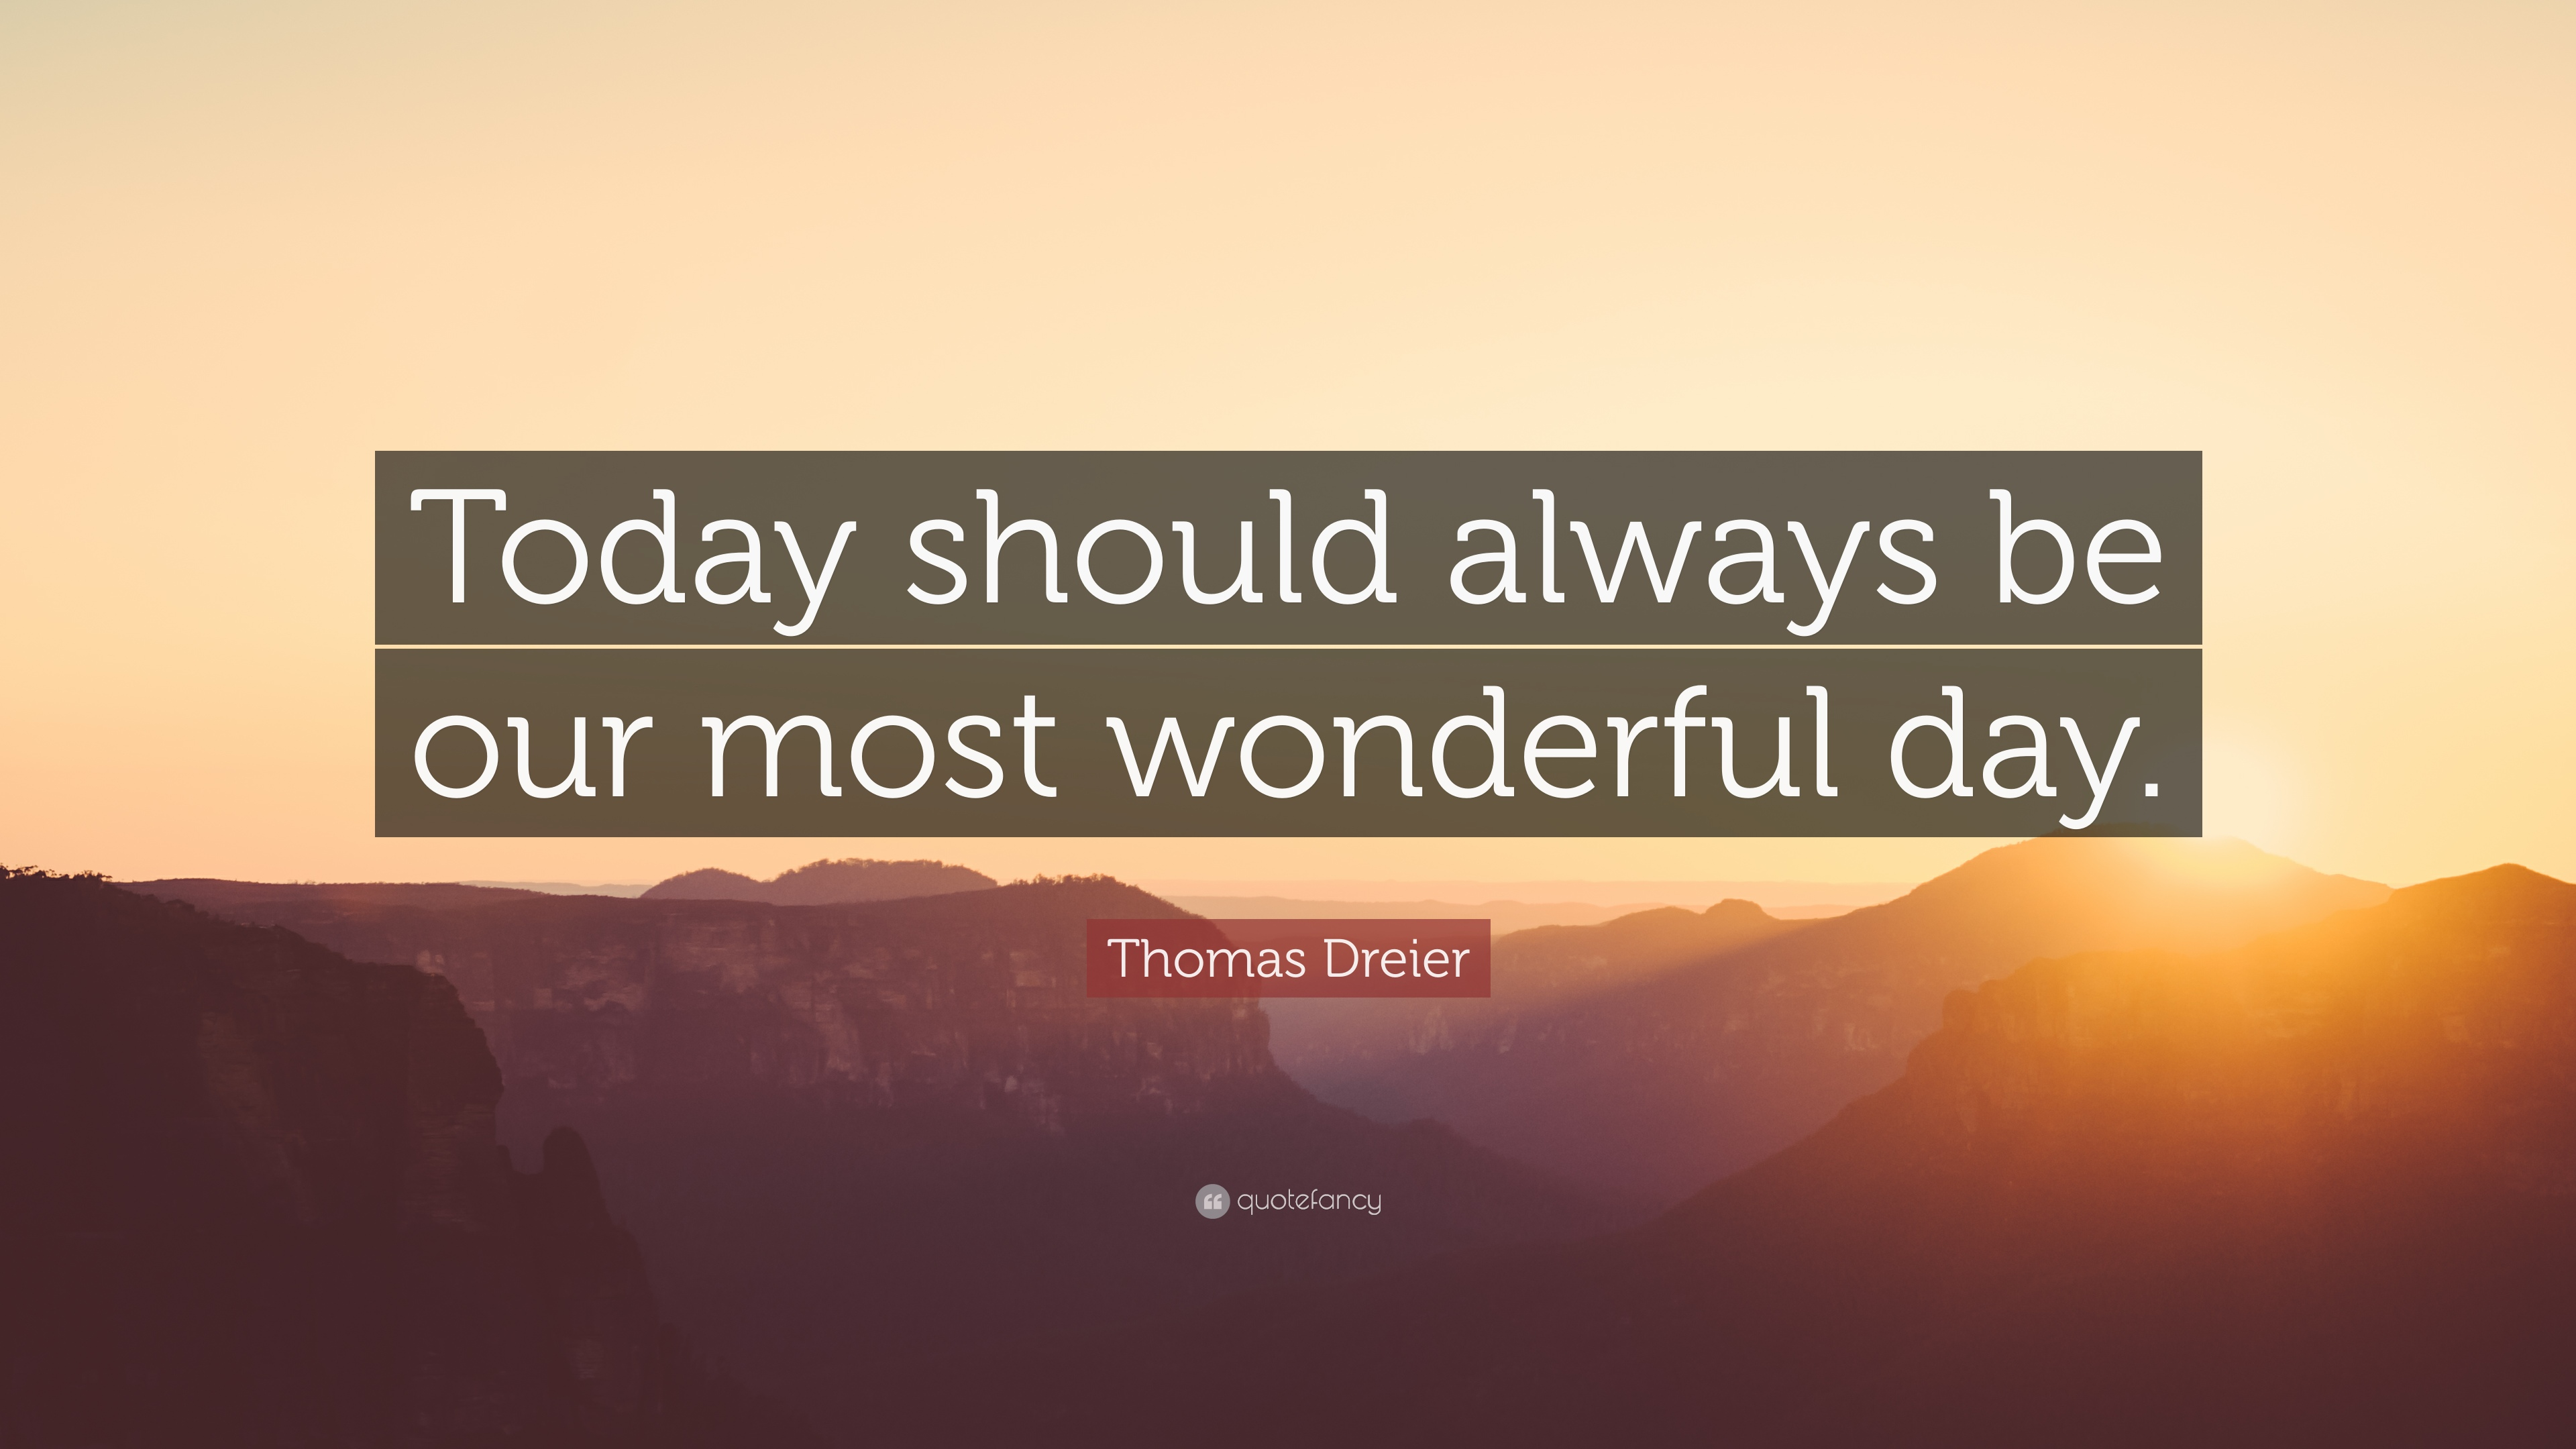 Thomas Dreier Quote Today Should Always Be Our Most Wonderful Day